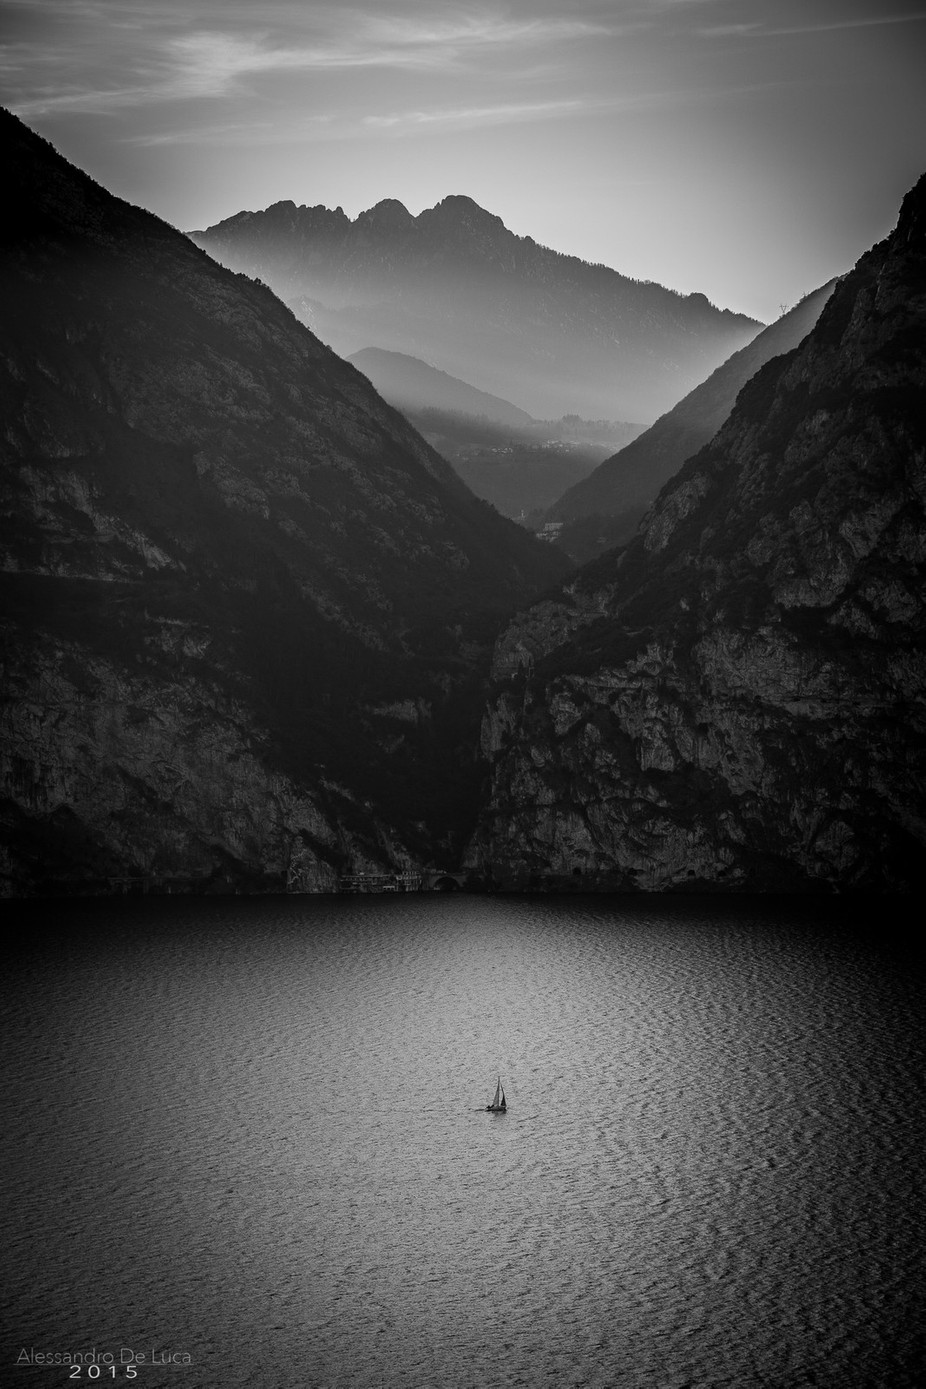 Feeling small ... but capable of great things! by AlessandroDeLuca - Black And White Landscapes Photo Contest